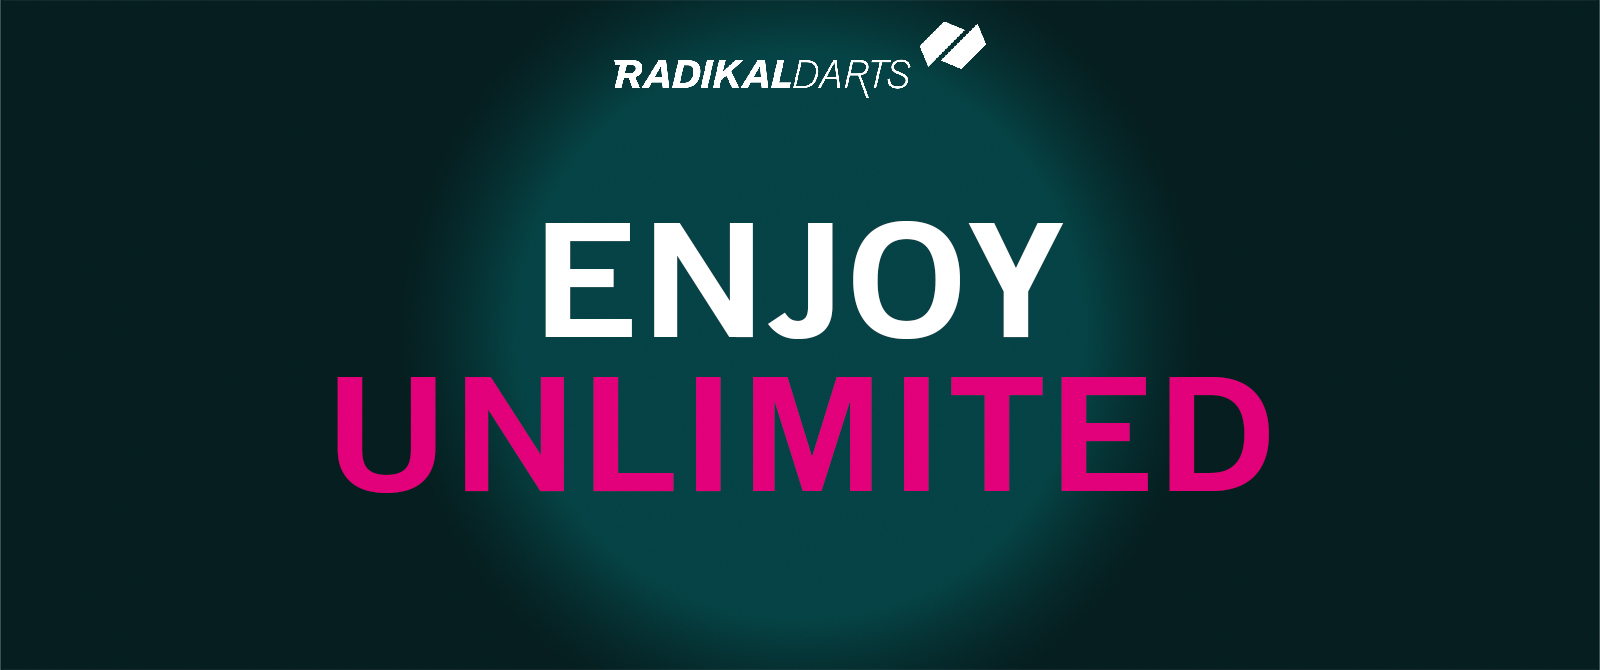 ENJOY UNLIMITED